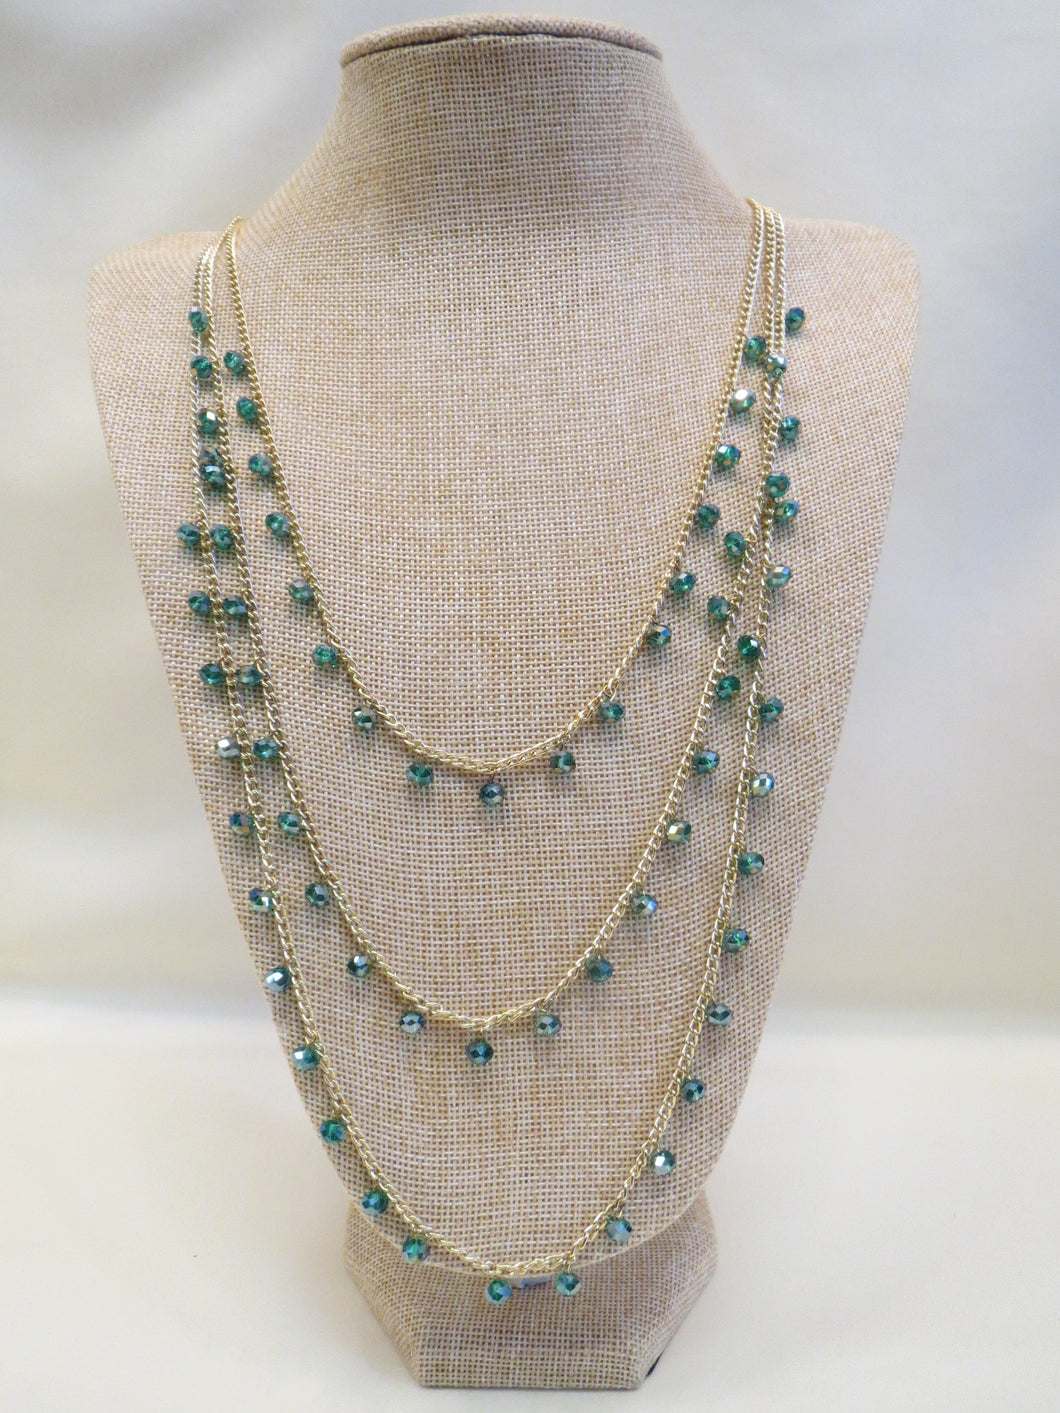 ADO | 3 Layer Teal Beads Gold Chain Necklace - All Decd Out